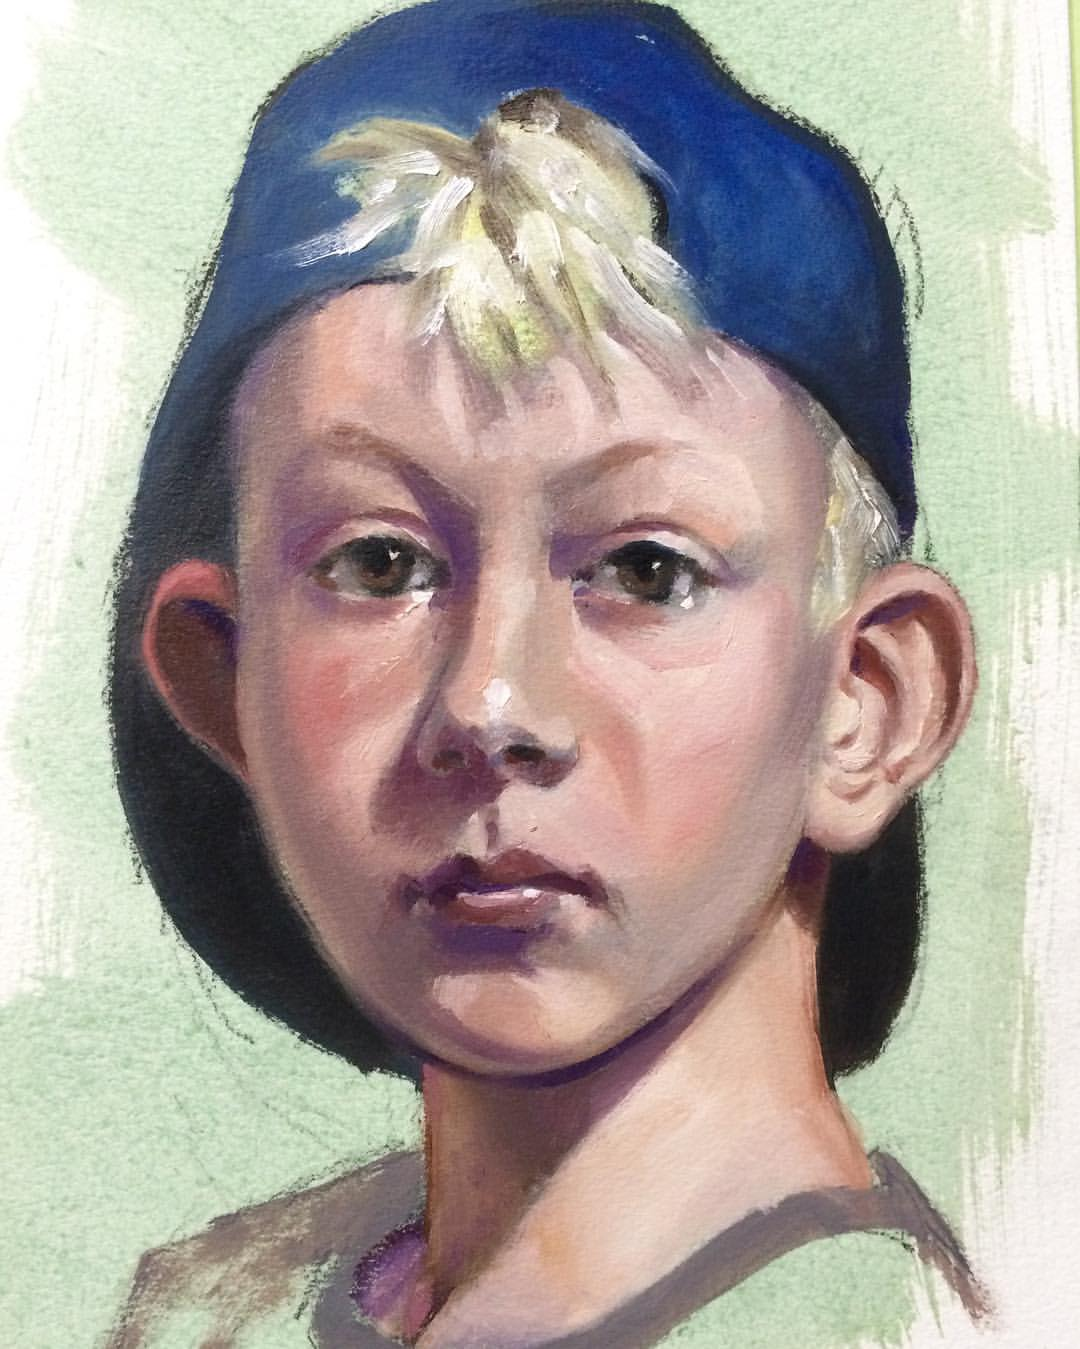 Boy in Blue Cap